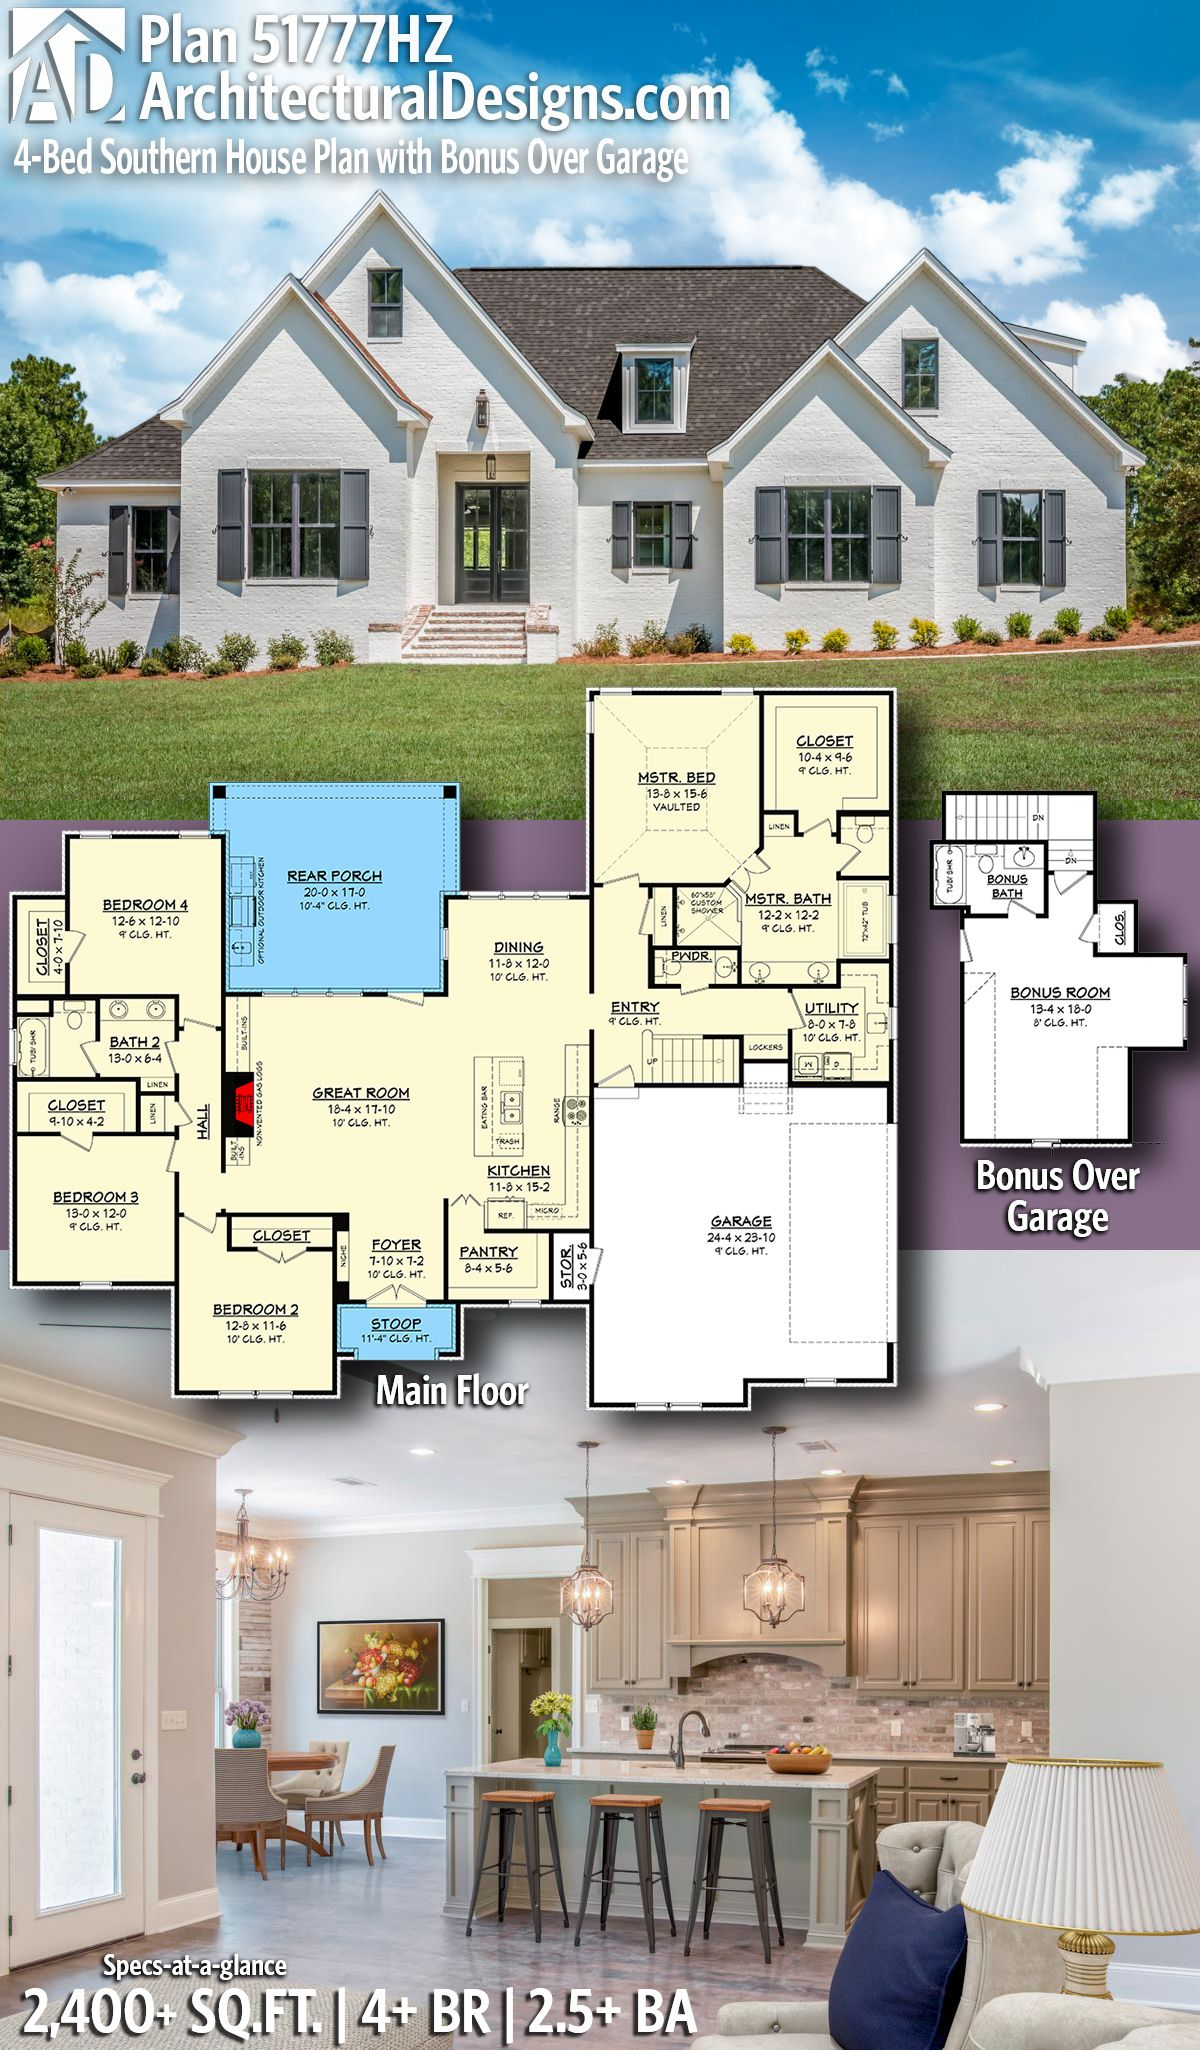 Plan hz bed southern house plan with bonus over garage